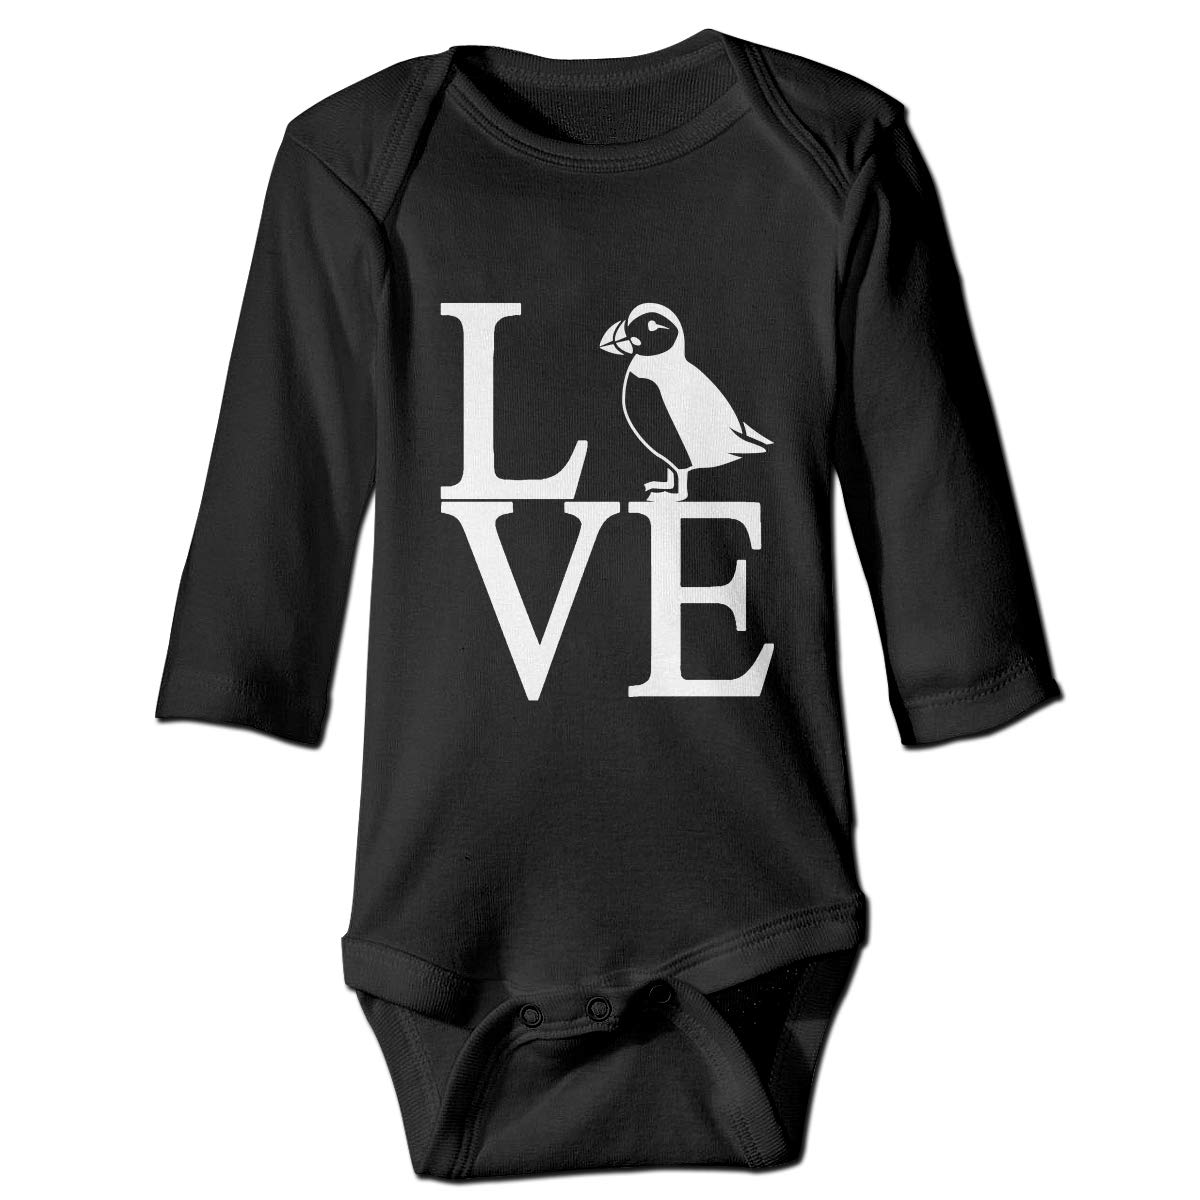 Love Iceland Puffin Long Sleeve Romper Onesie Bodysuit for Baby